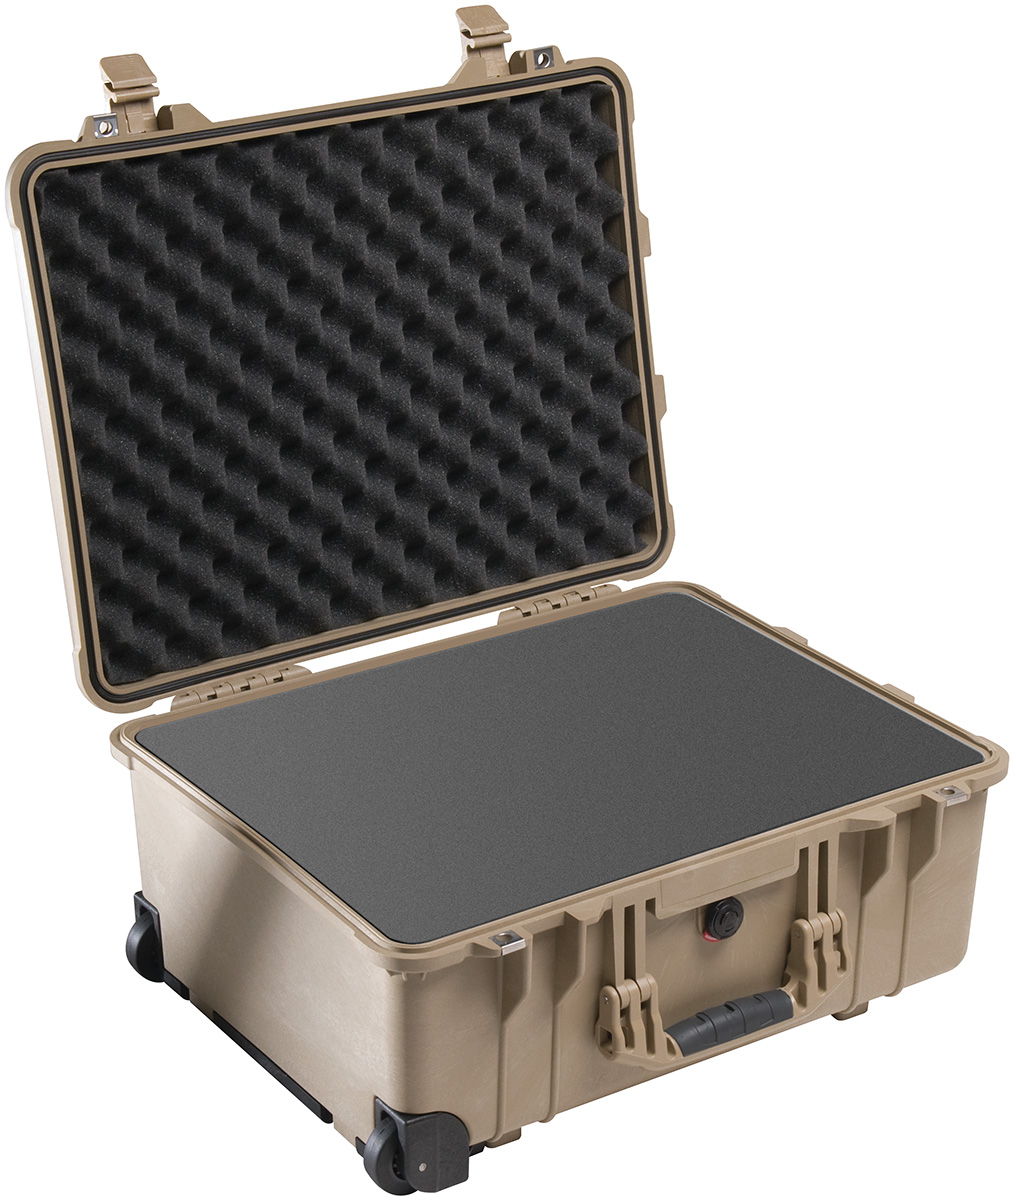 pelican 1560 usa made hardcase rolling case